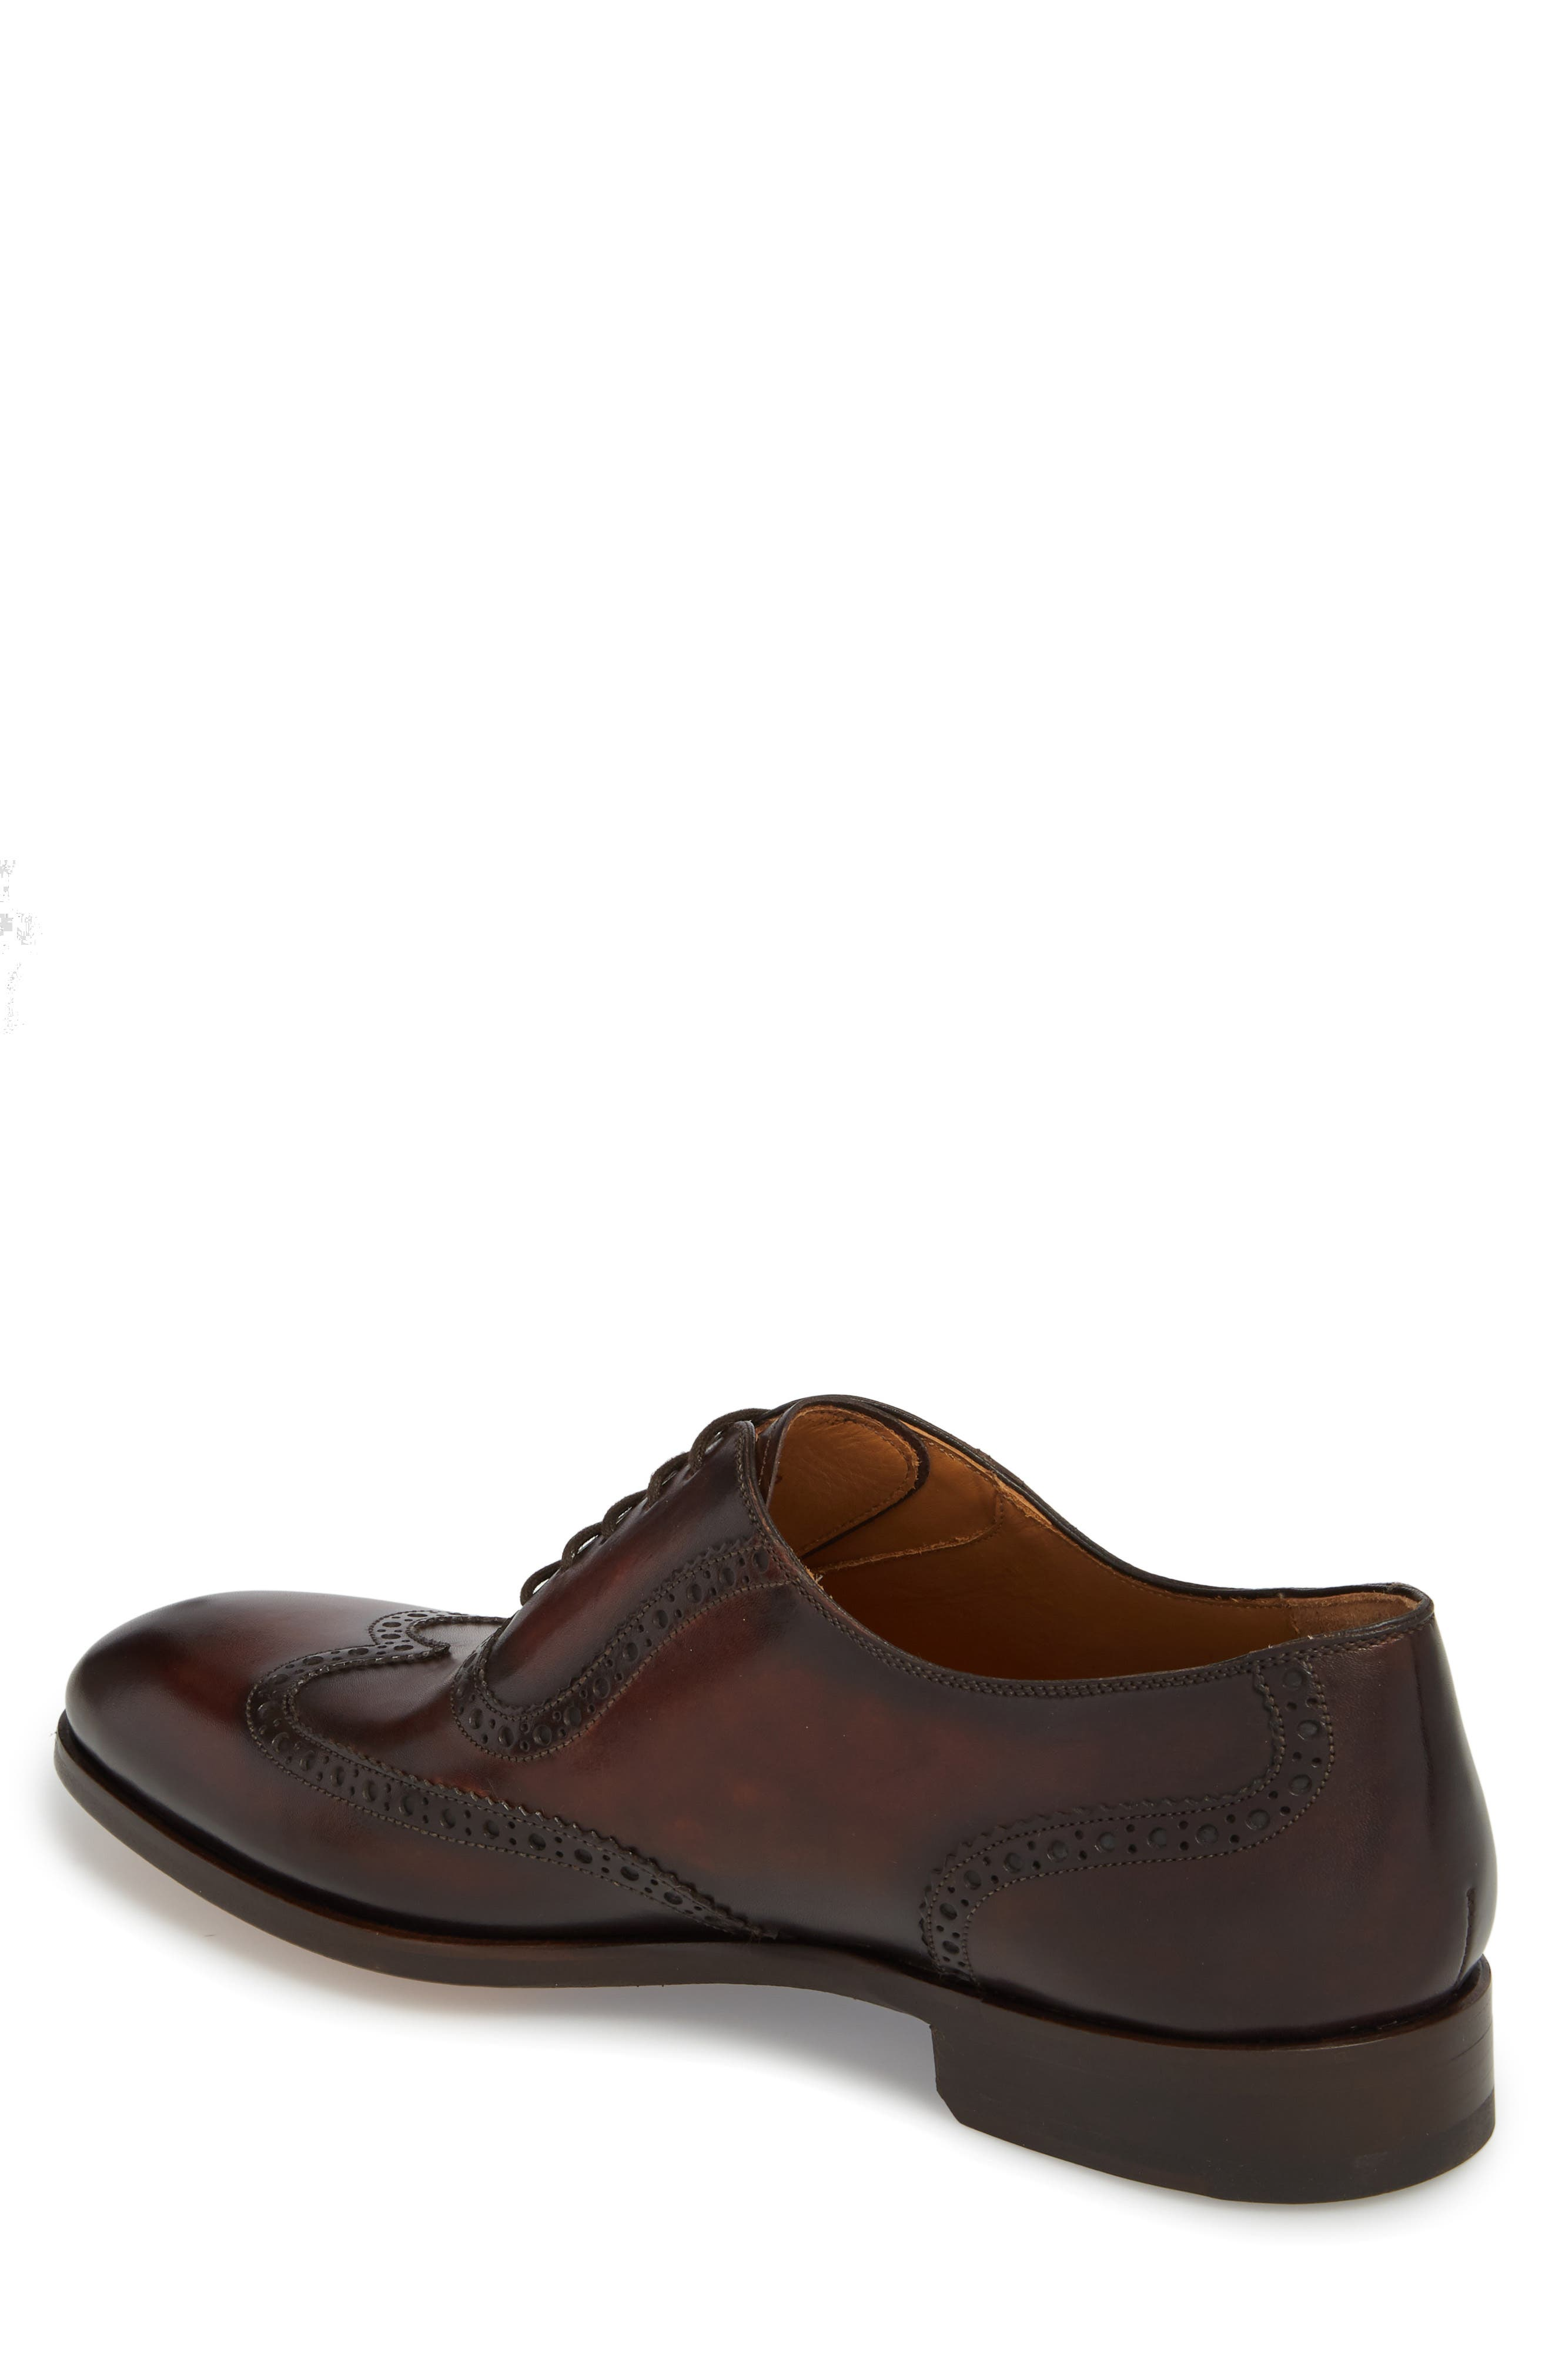 Dana Wingtip Oxford,                             Alternate thumbnail 2, color,                             Mid-Brown Leather